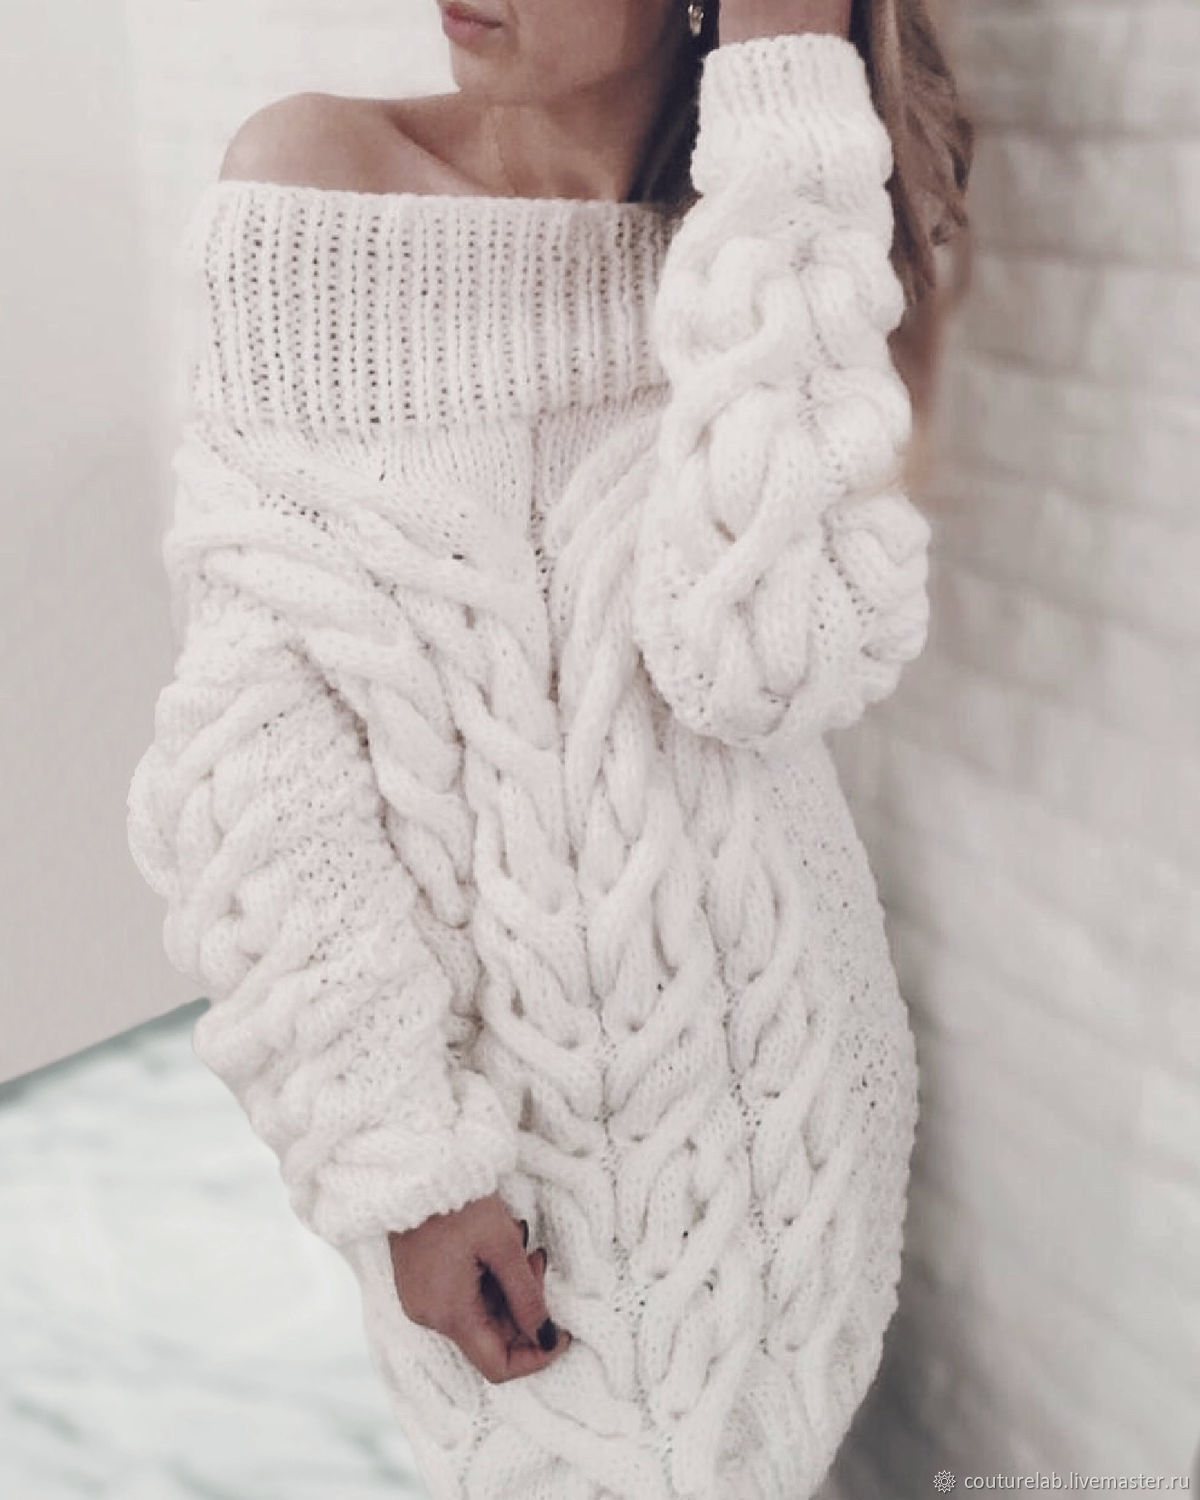 White long women's knitted sweater from SHAPAR brand women knitted clothes handmade online store jerseys at the fair masters long off-shoulder sweater, white long sweater